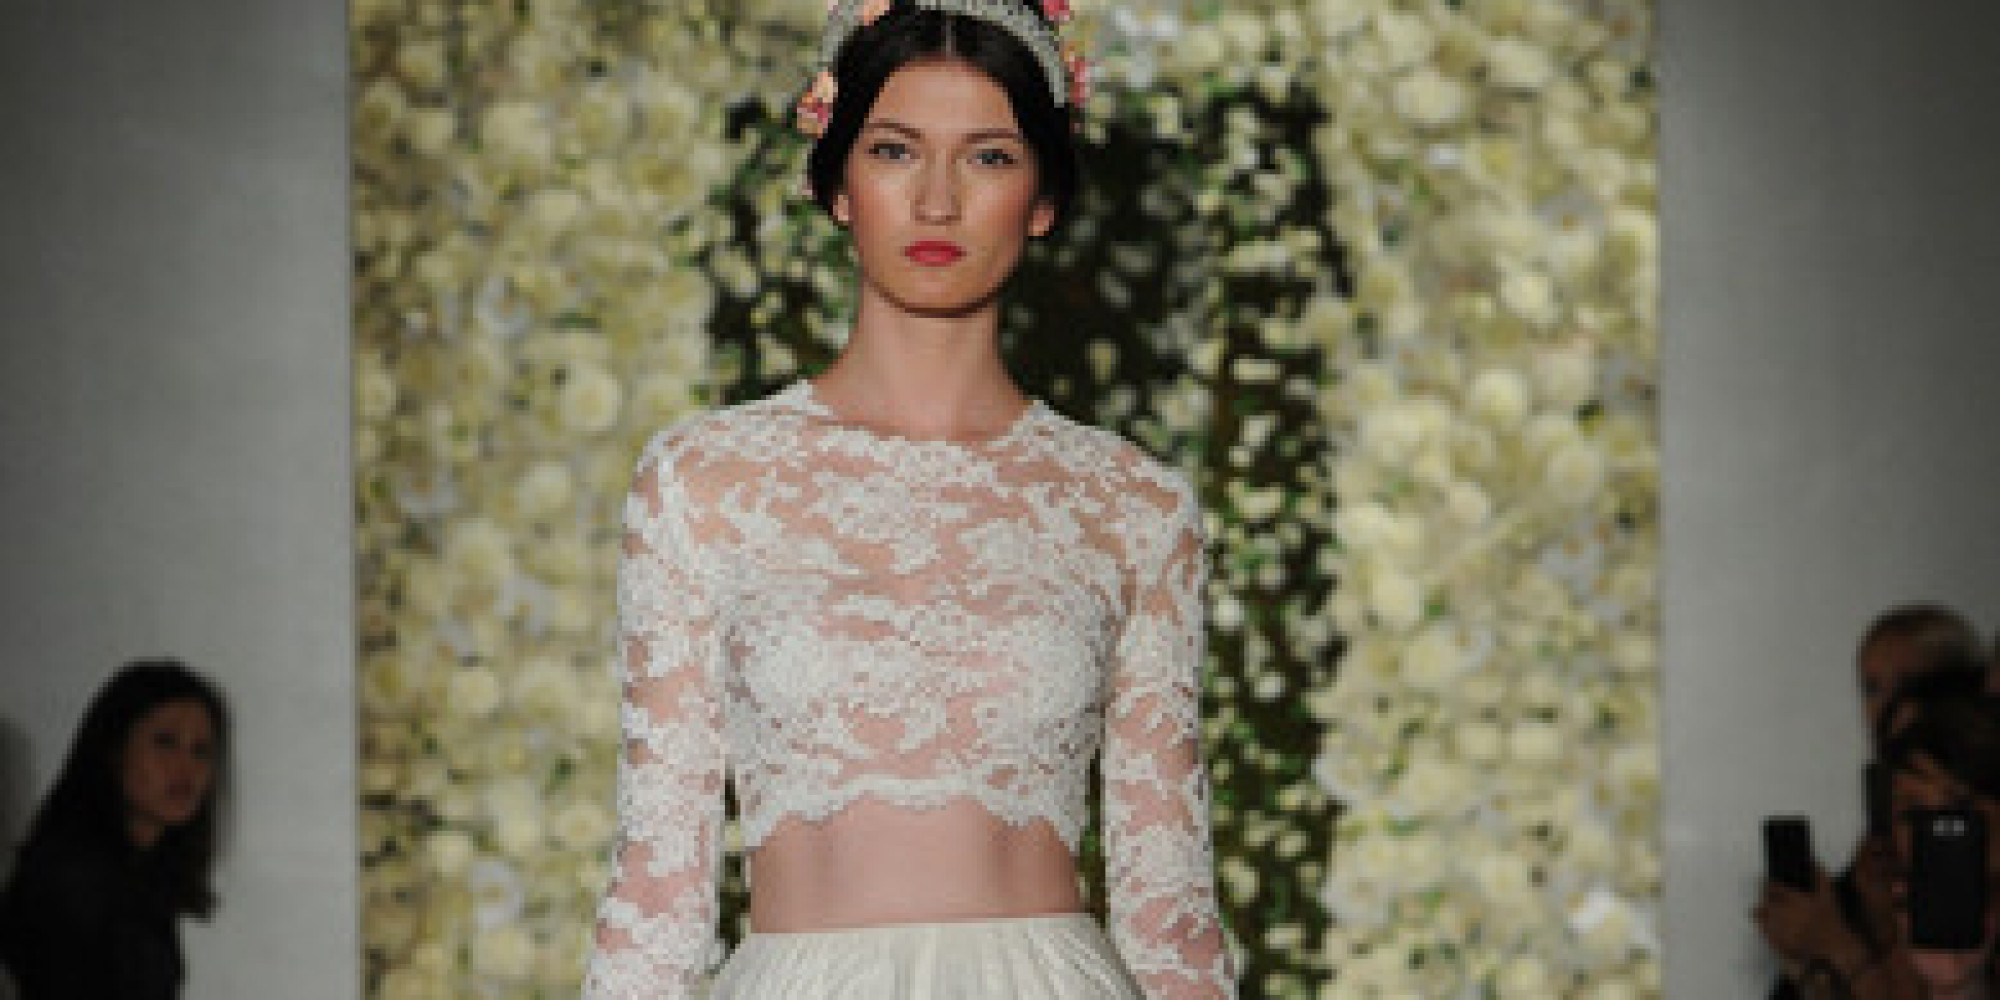 Reem Acra Wedding Dresses Prices - Discount Wedding Dresses